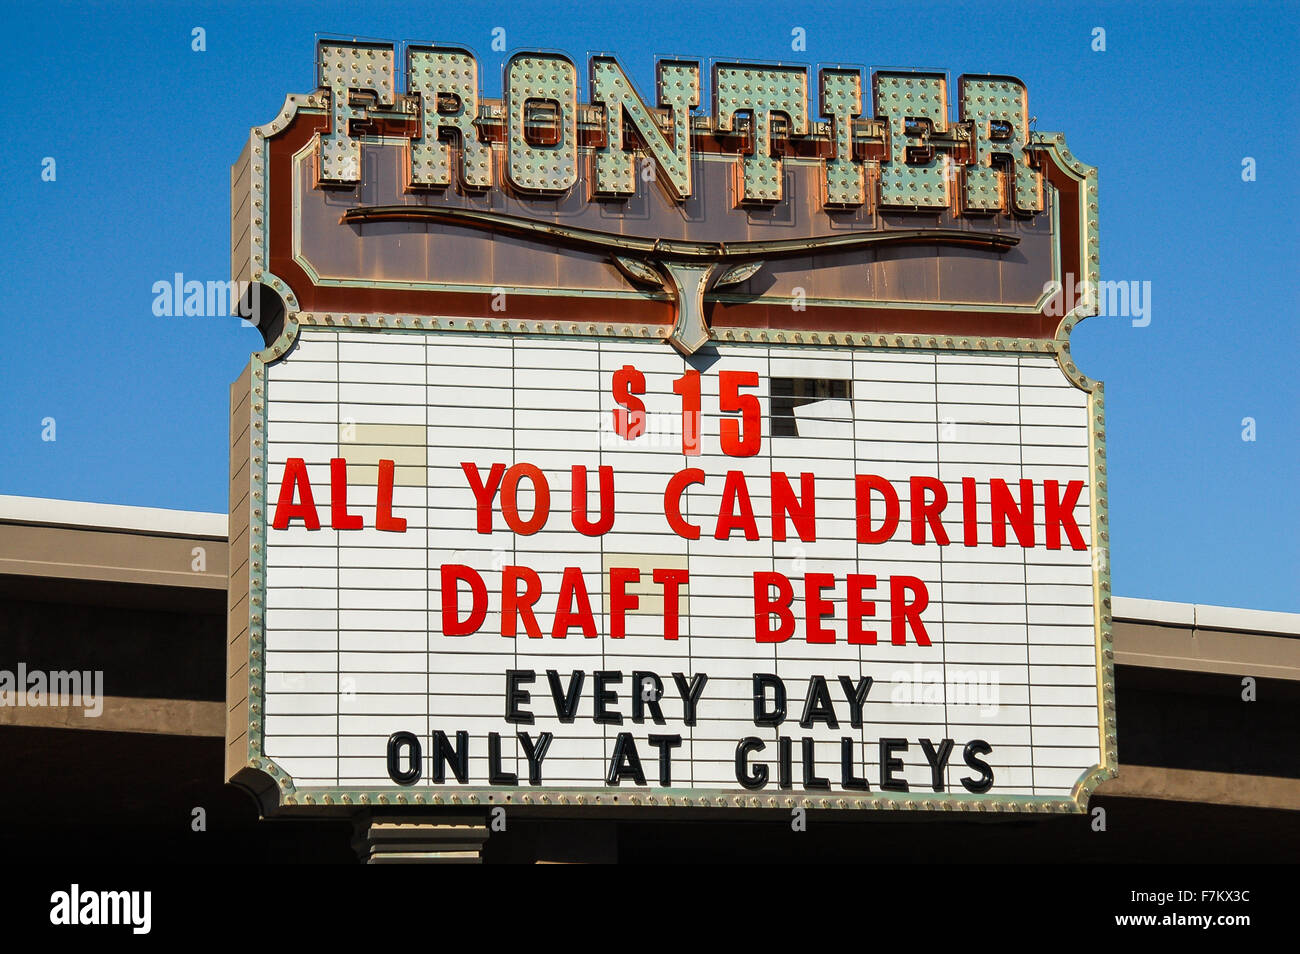 New Frontier Hotel Sign On Las Vegas Boulevard Advertising Cheap Beer